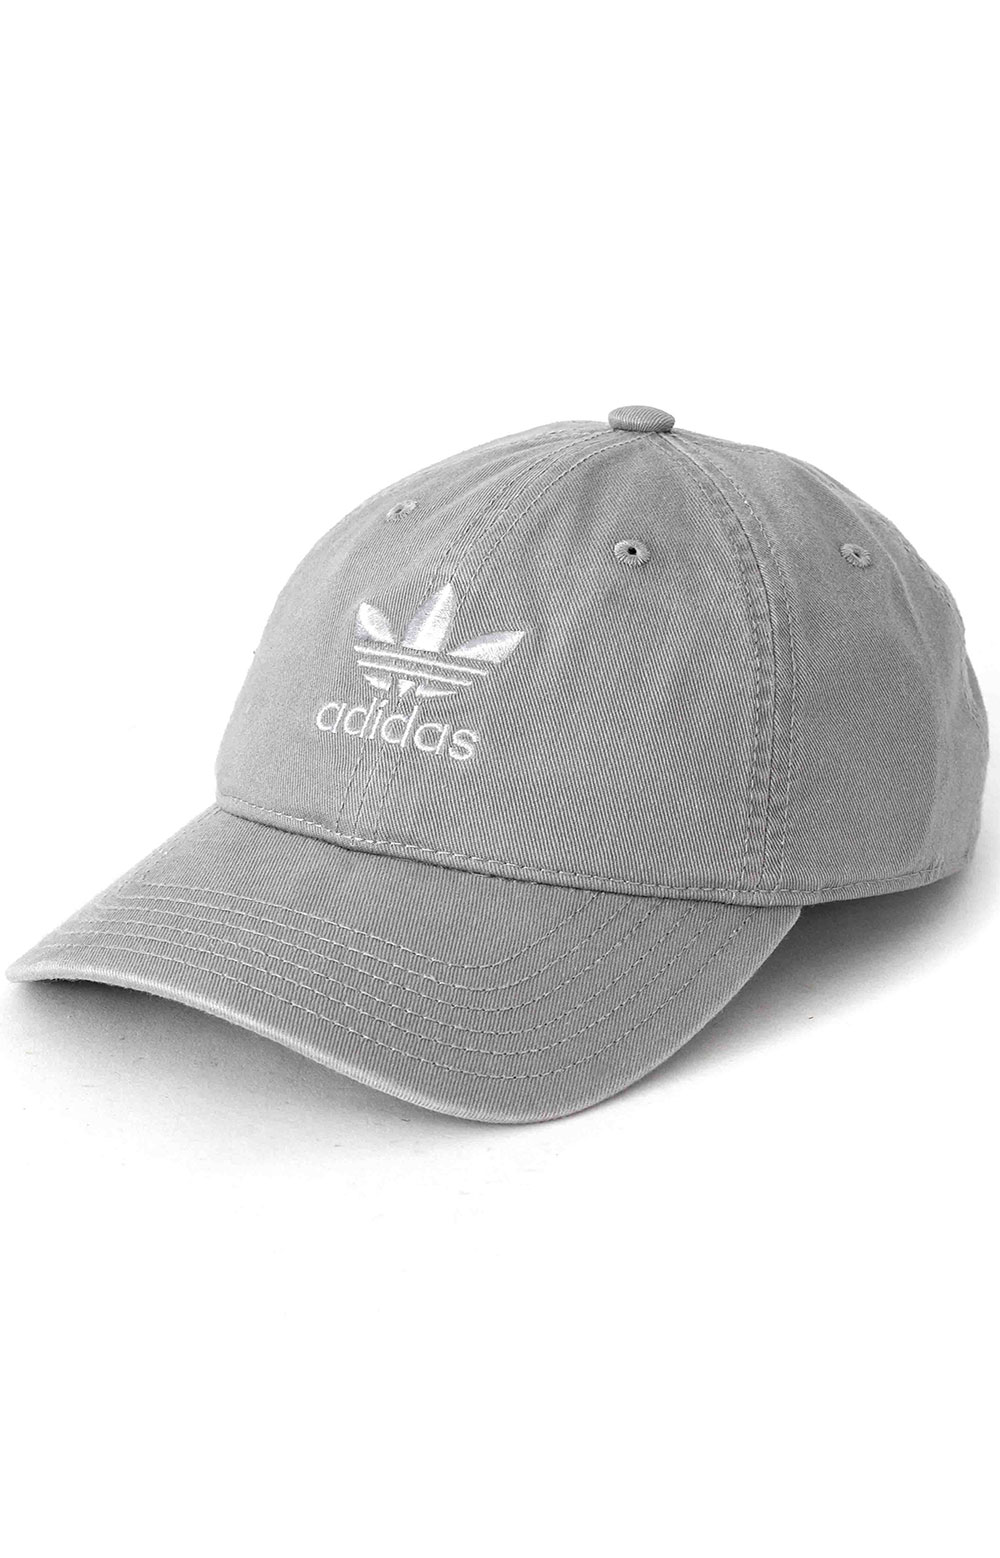 Originals Relaxed Strap-Back Hat - Dove Grey